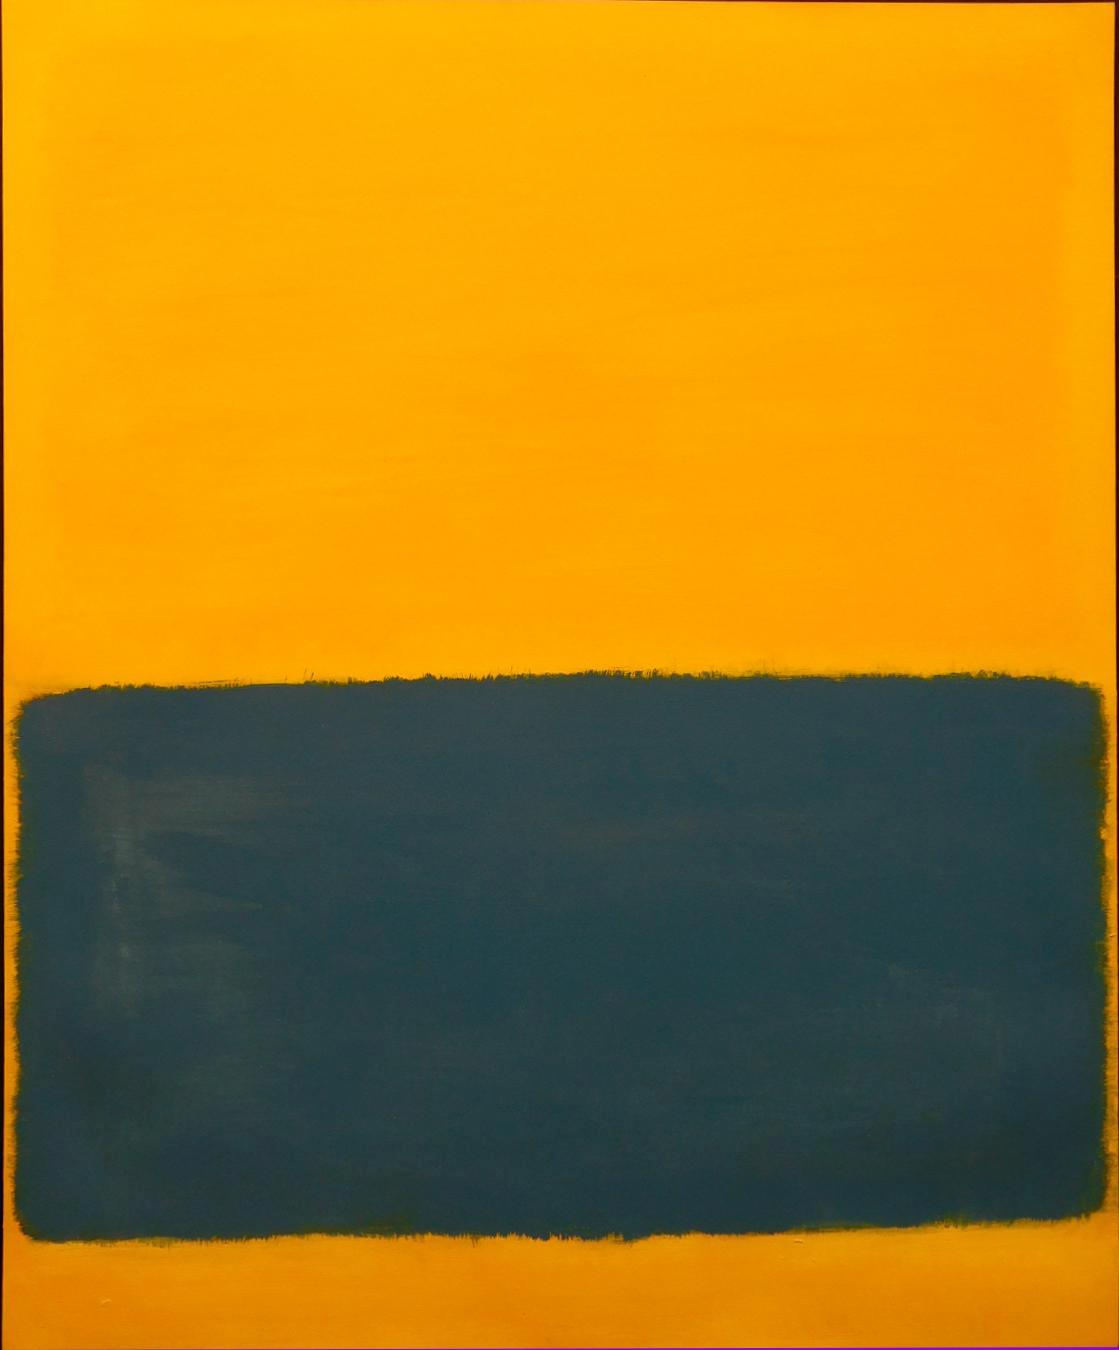 Untitled (Abstract Yellow and Blue) by Mark Rothko